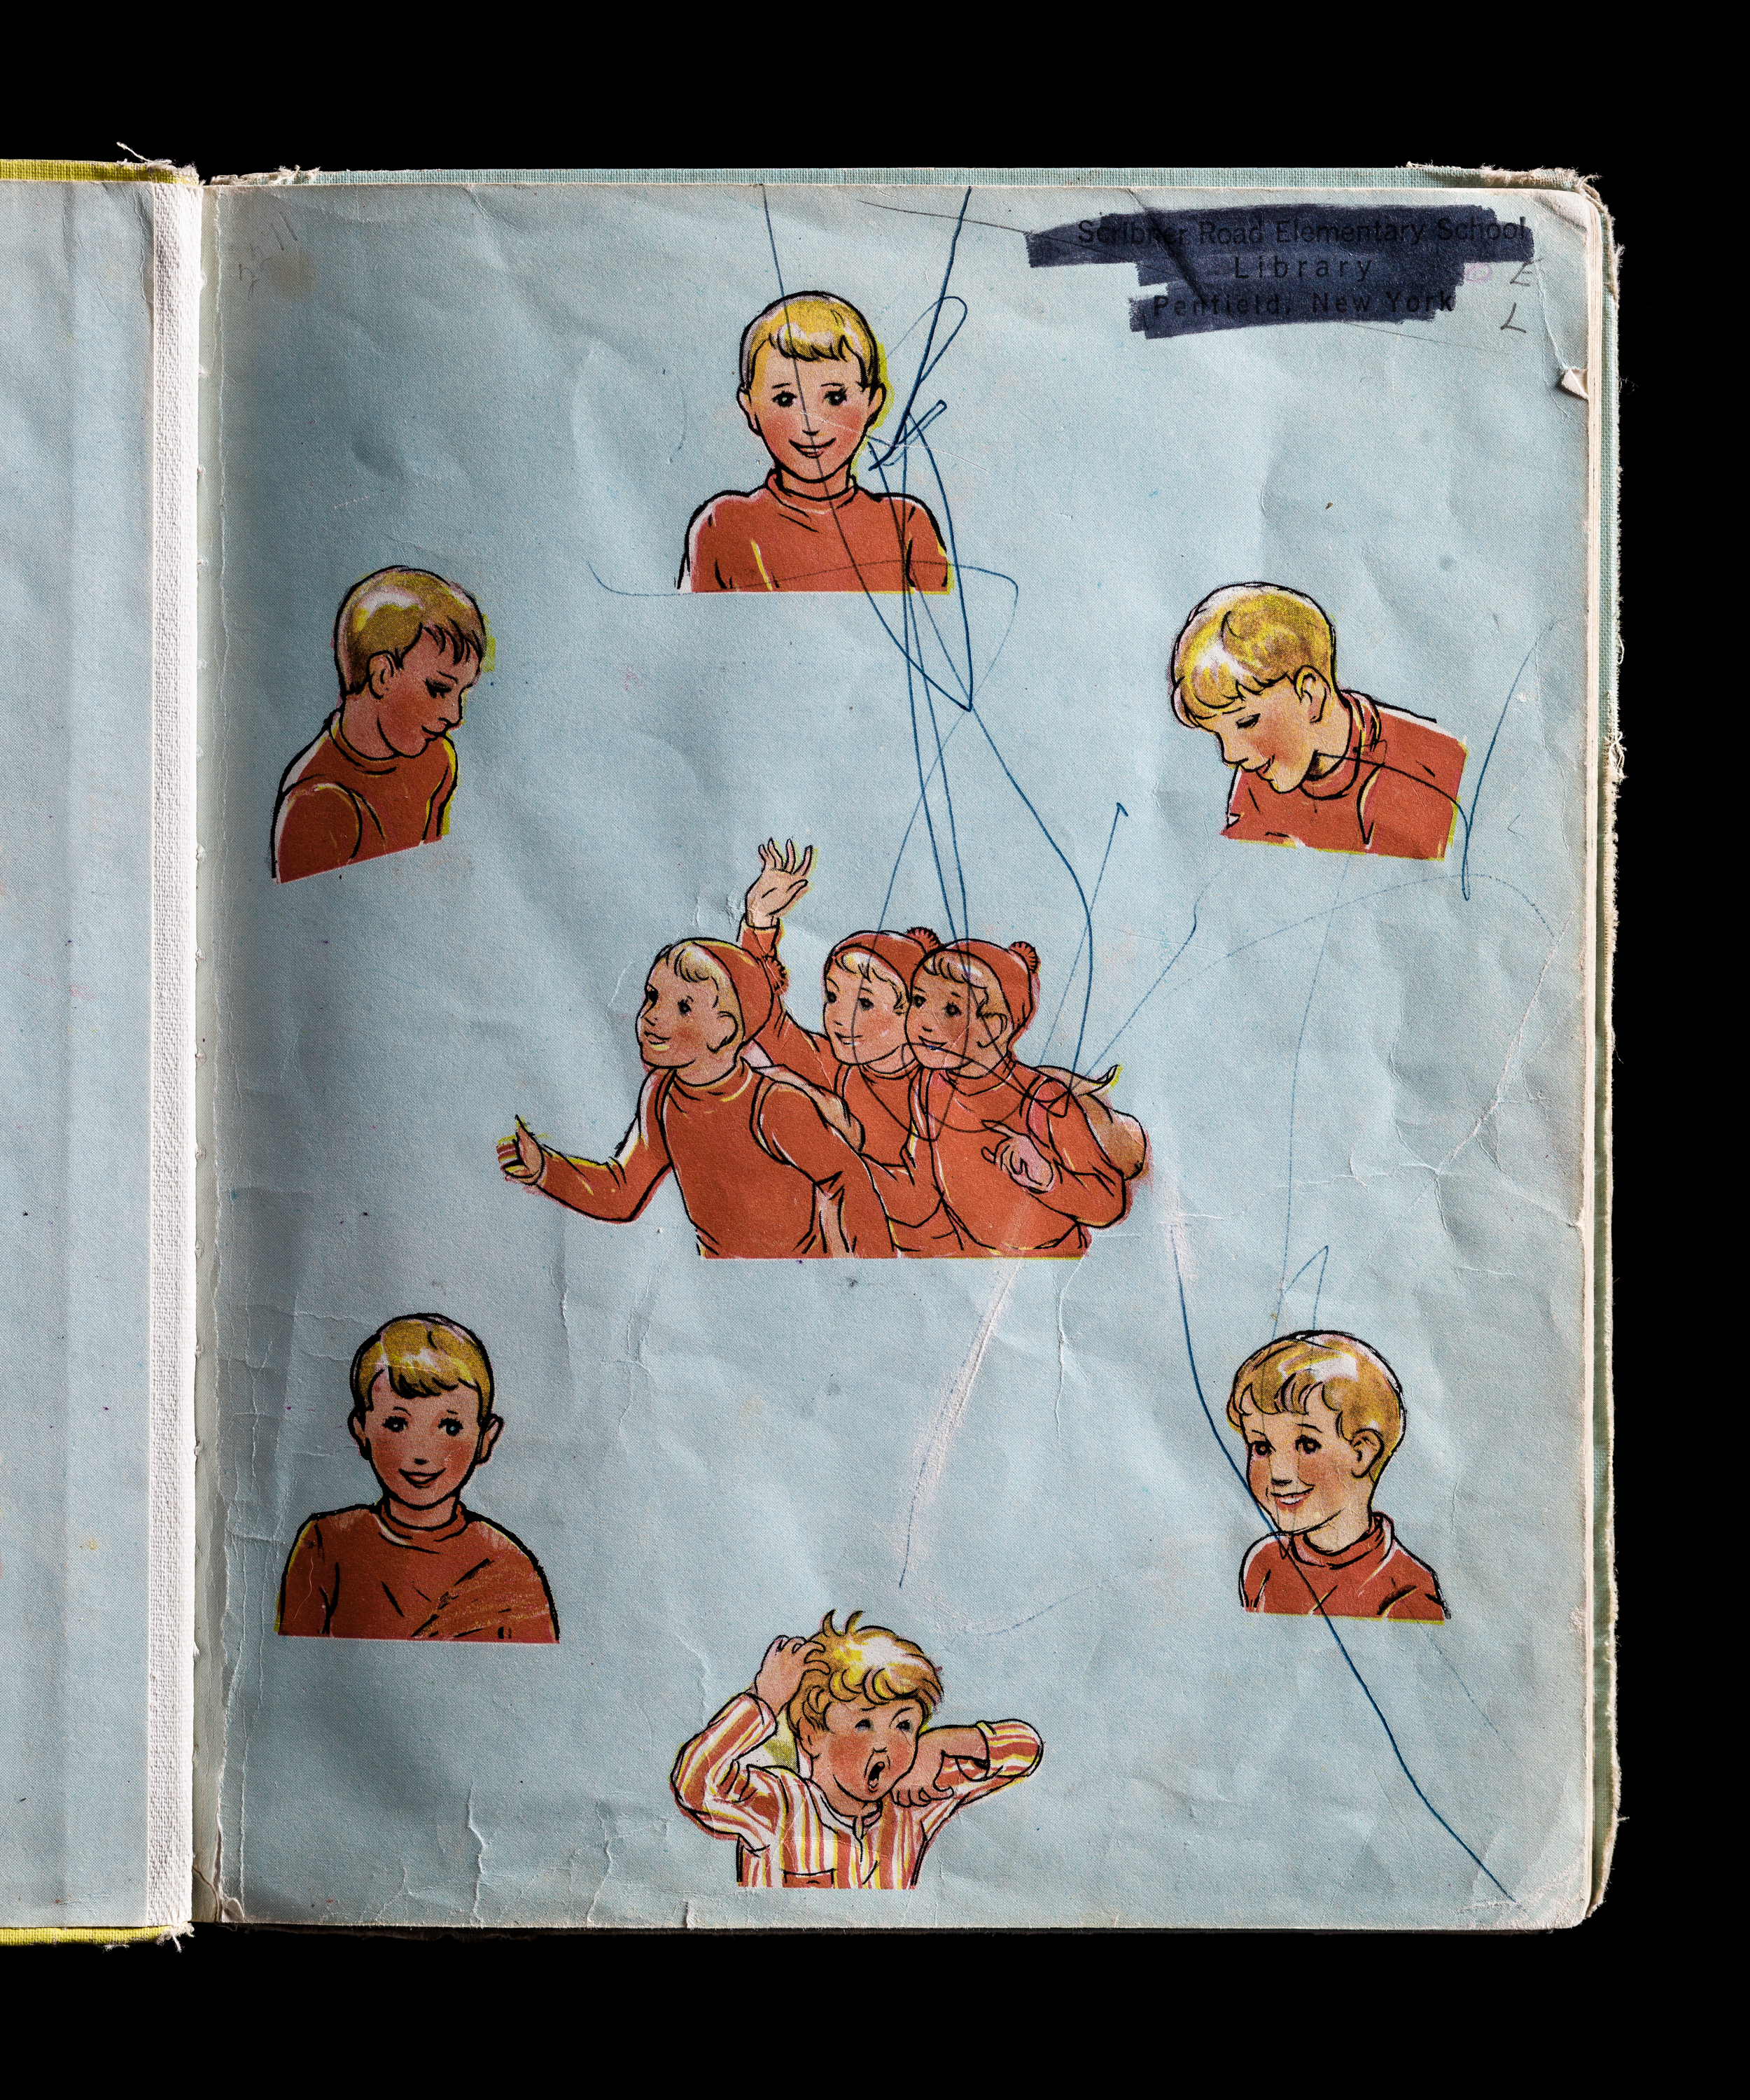 Snipp, Snapp, Snurr and the Yellow Sled, Interior Right Page